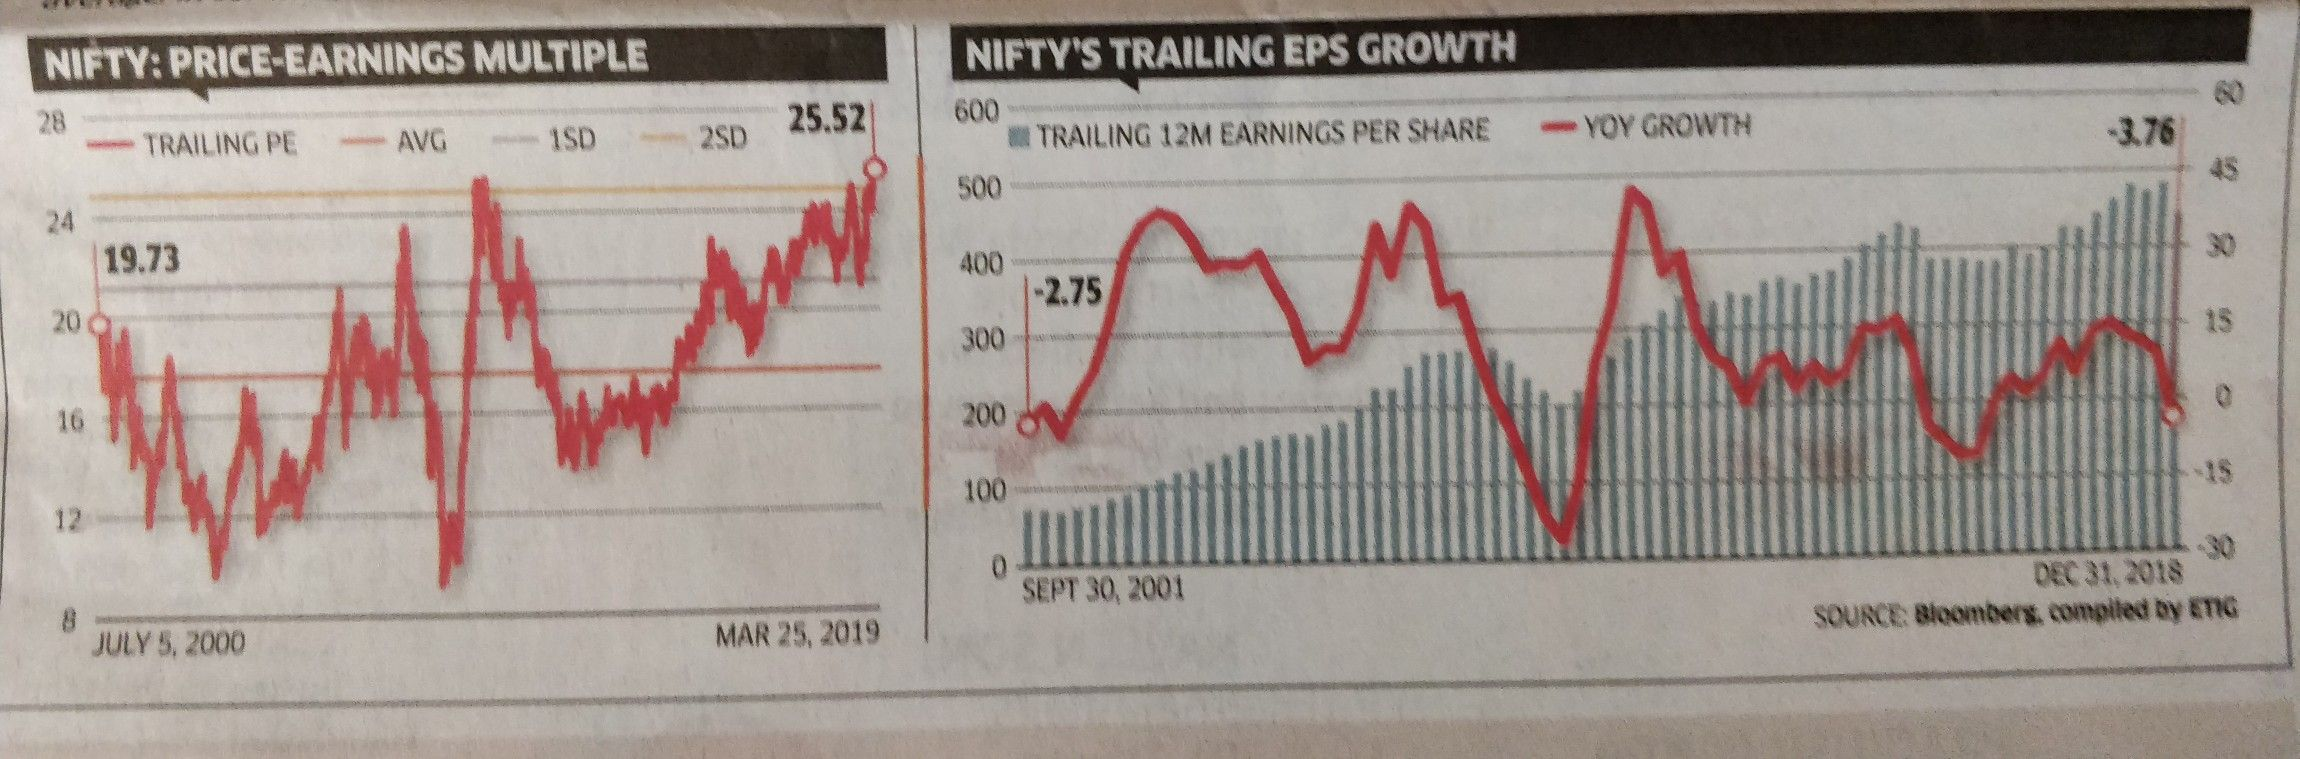 Trailing Nifty P E And Ttm Eps Growth 26 March 2019 Nifty Peratio Valuation Eps Nifty Chart